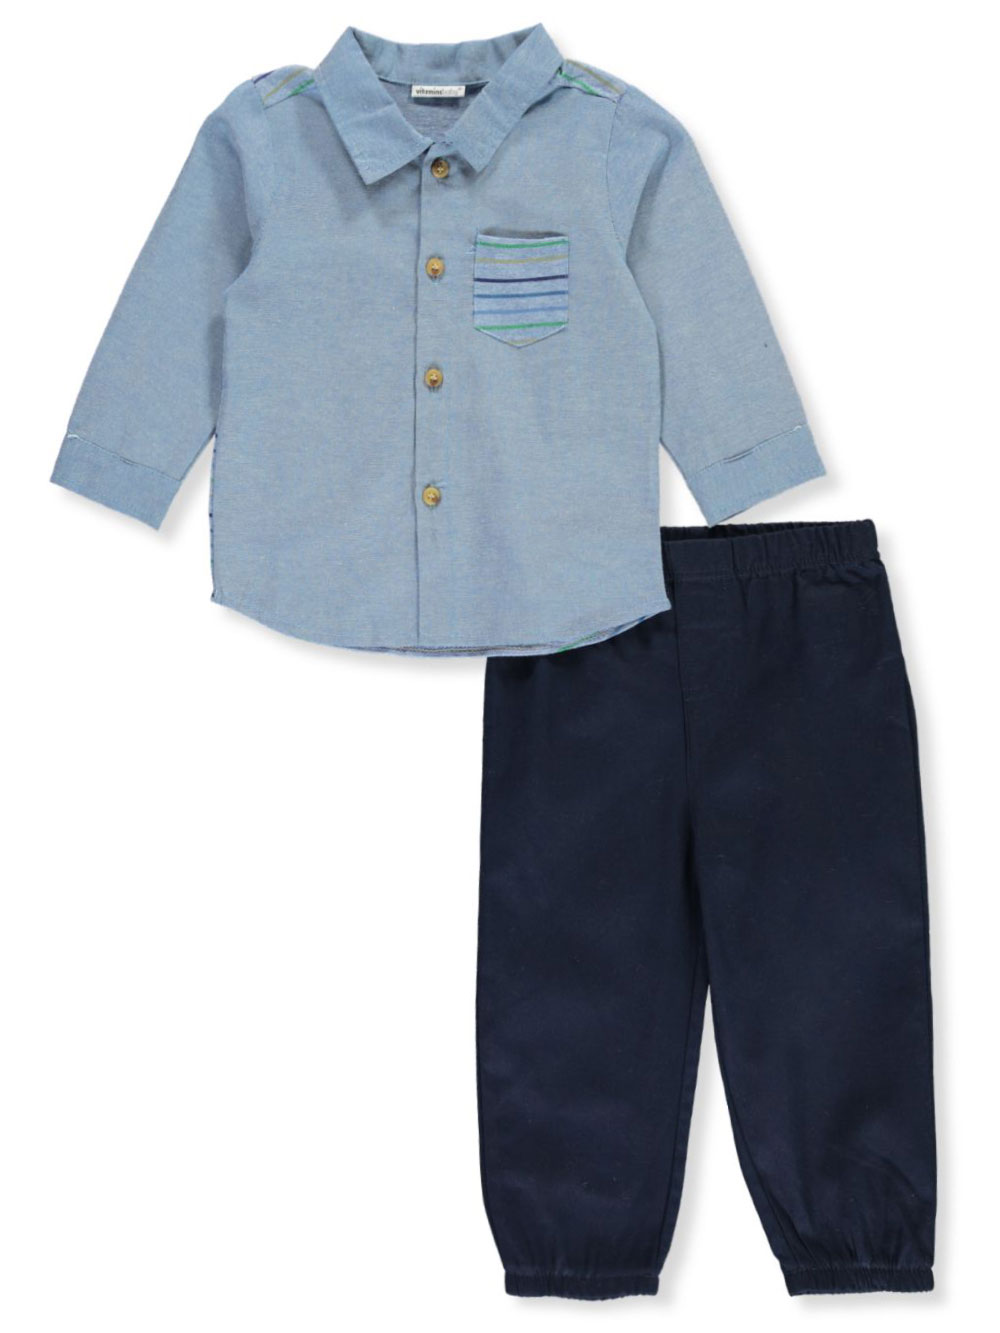 Vitamins Kids Pant Sets